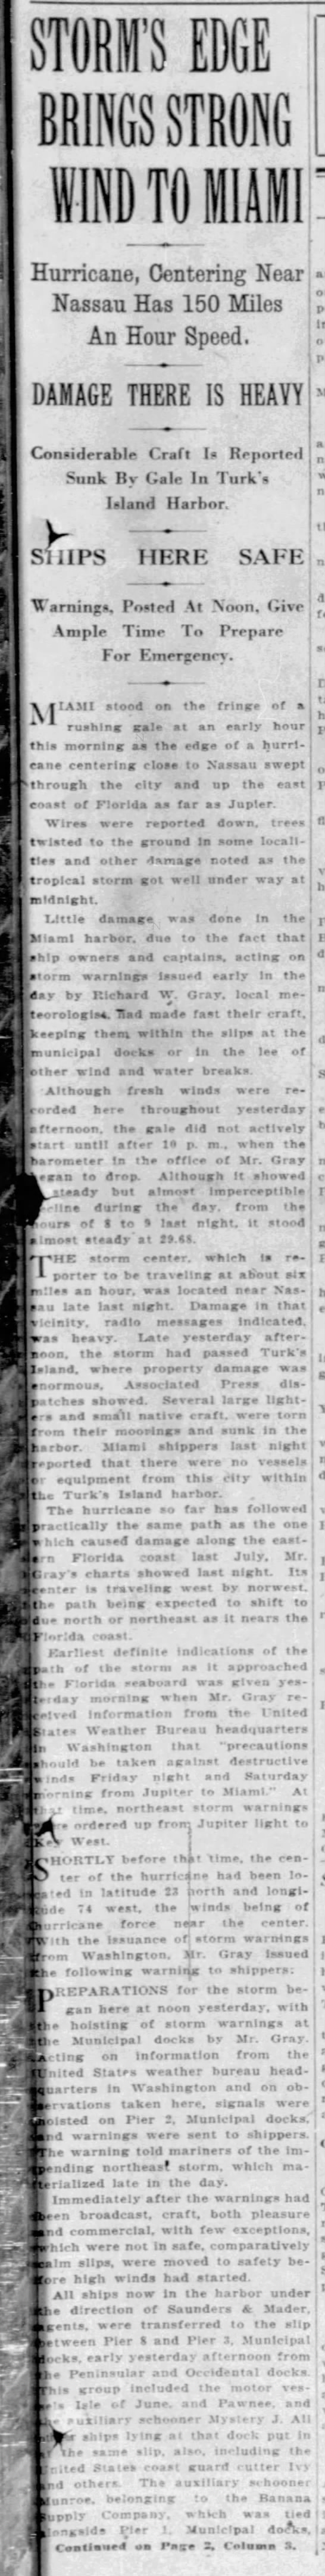 First storm warnings issued for approaching hurricane - September 18, 1926 -